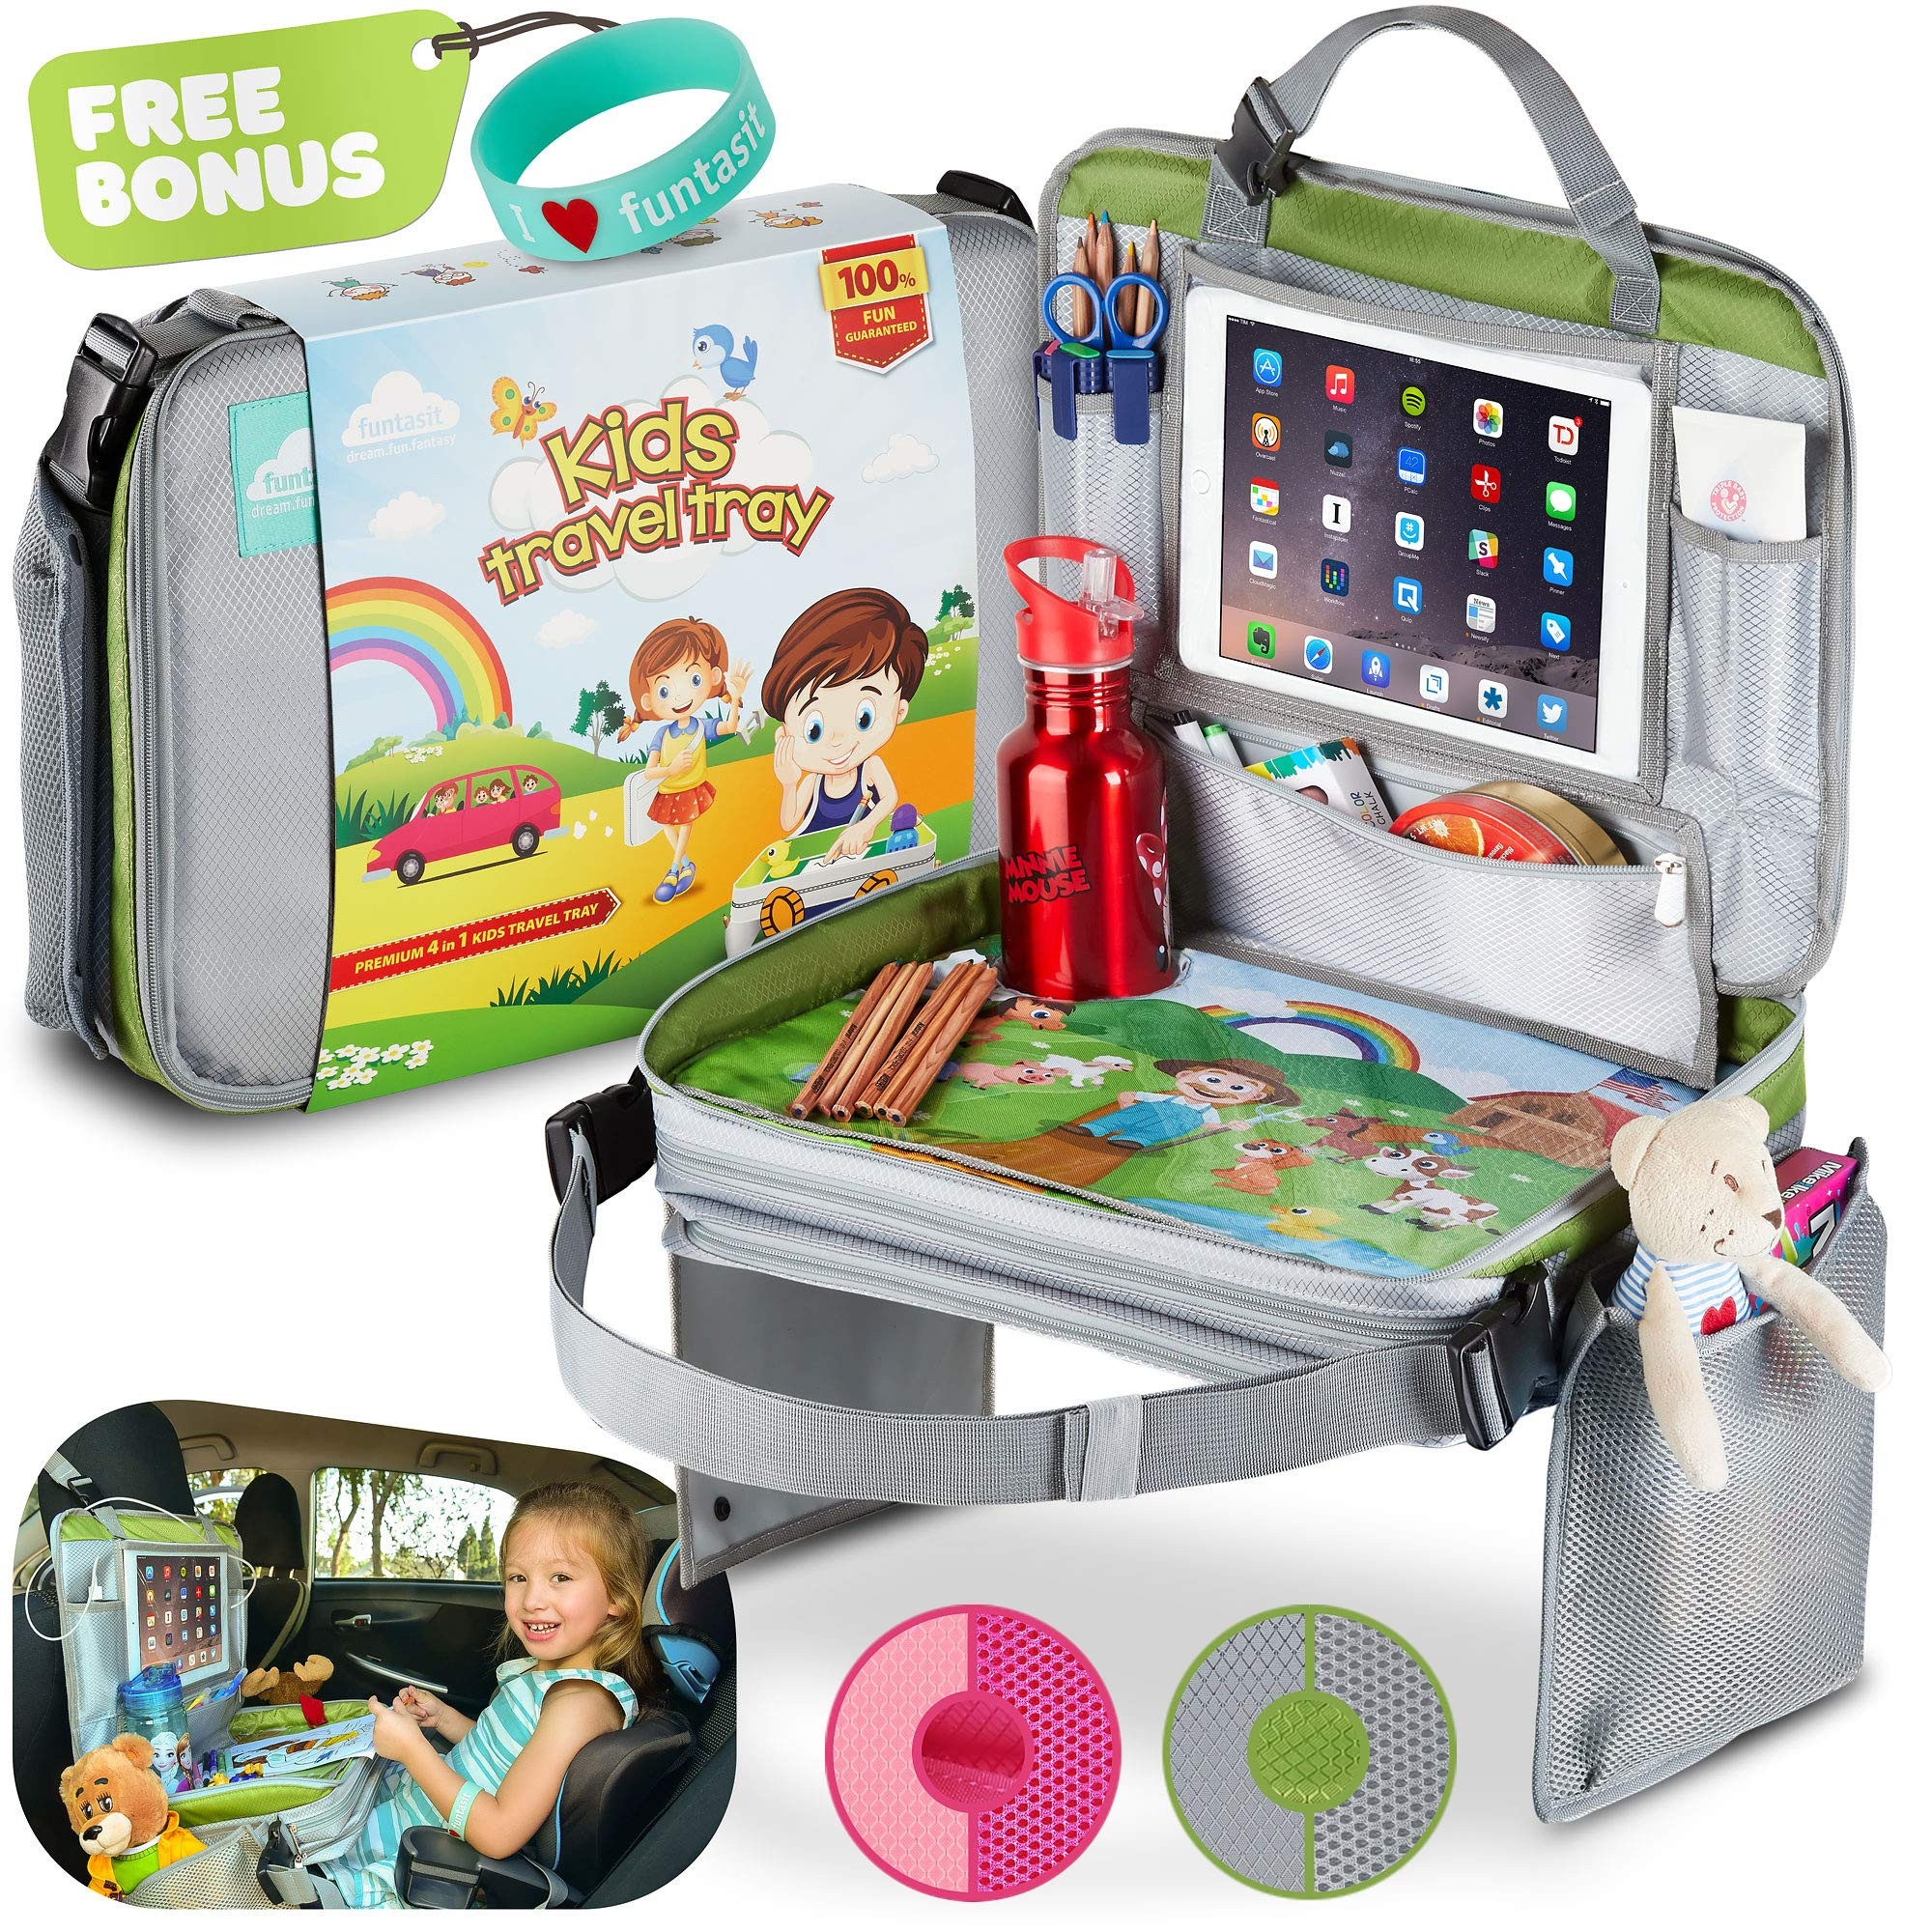 funtasit Kids Travel Tray All-in-One Carry Bag, Play Table, Storage and Tablet Holder with Detachable Back - Side Pockets - Sturdy, Leakproof, Easy Clean. Gray/Silver/Green. Bonus Bracelet by funtasit